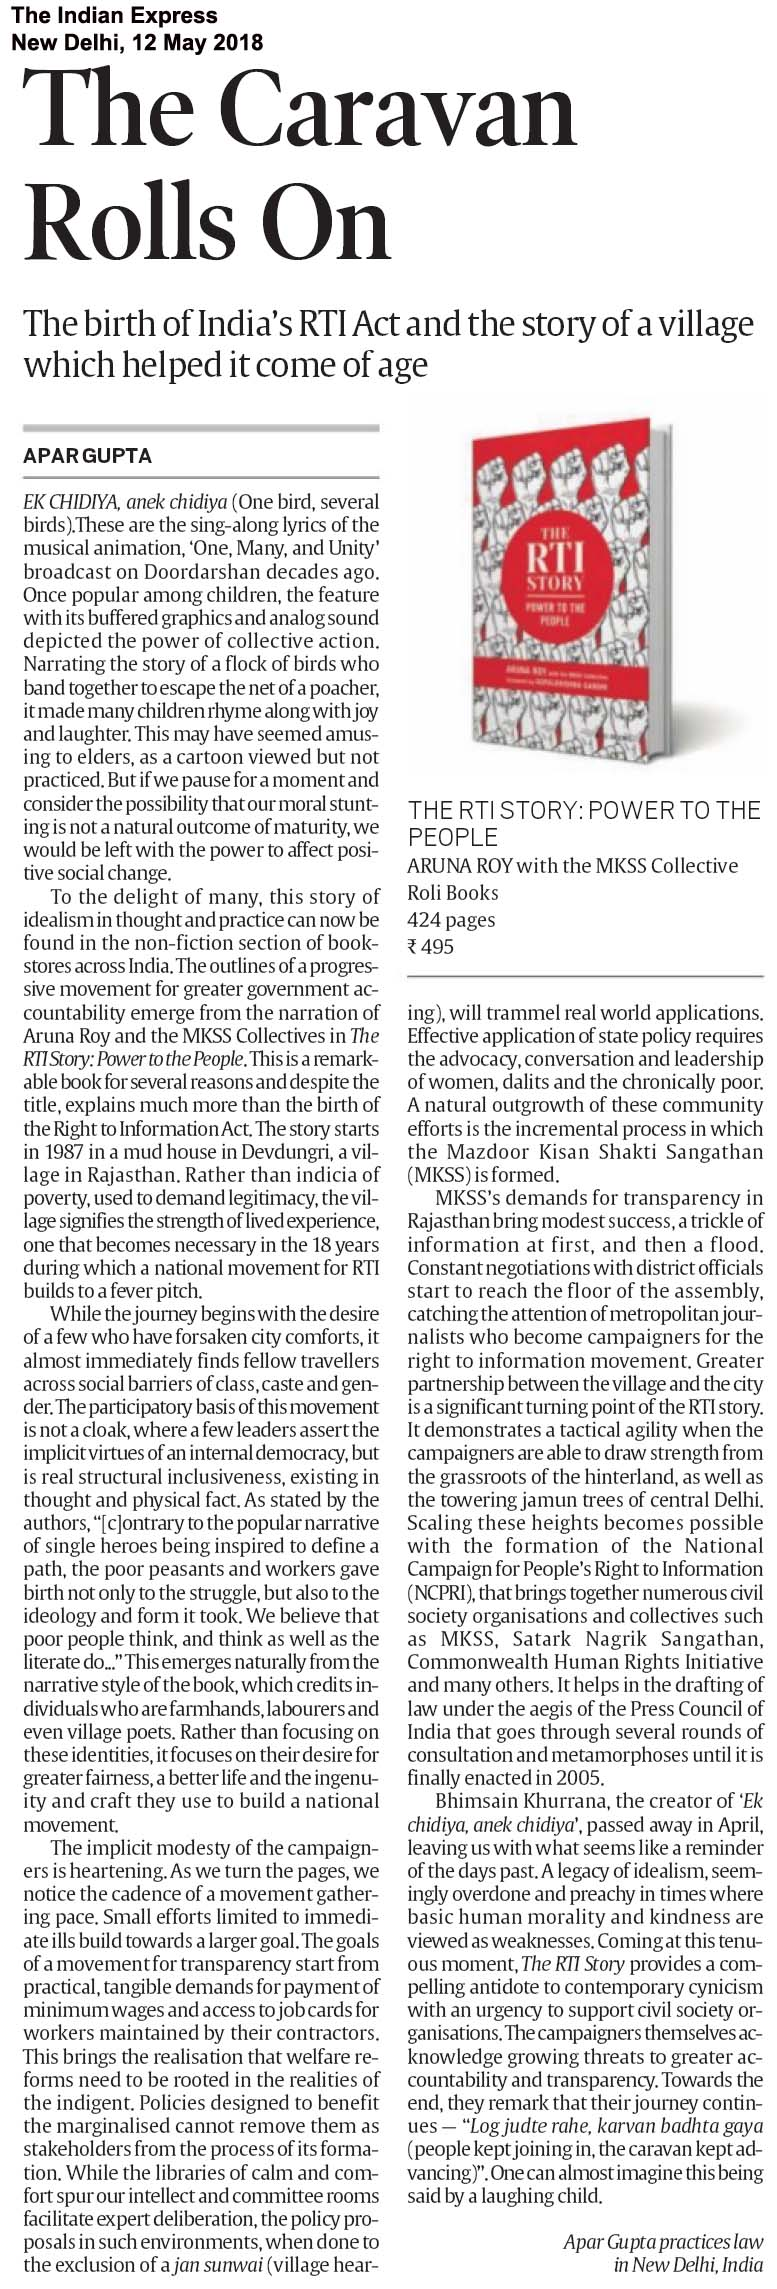 The RTI Story<br><span>The Indian Express, New Delhi</span>